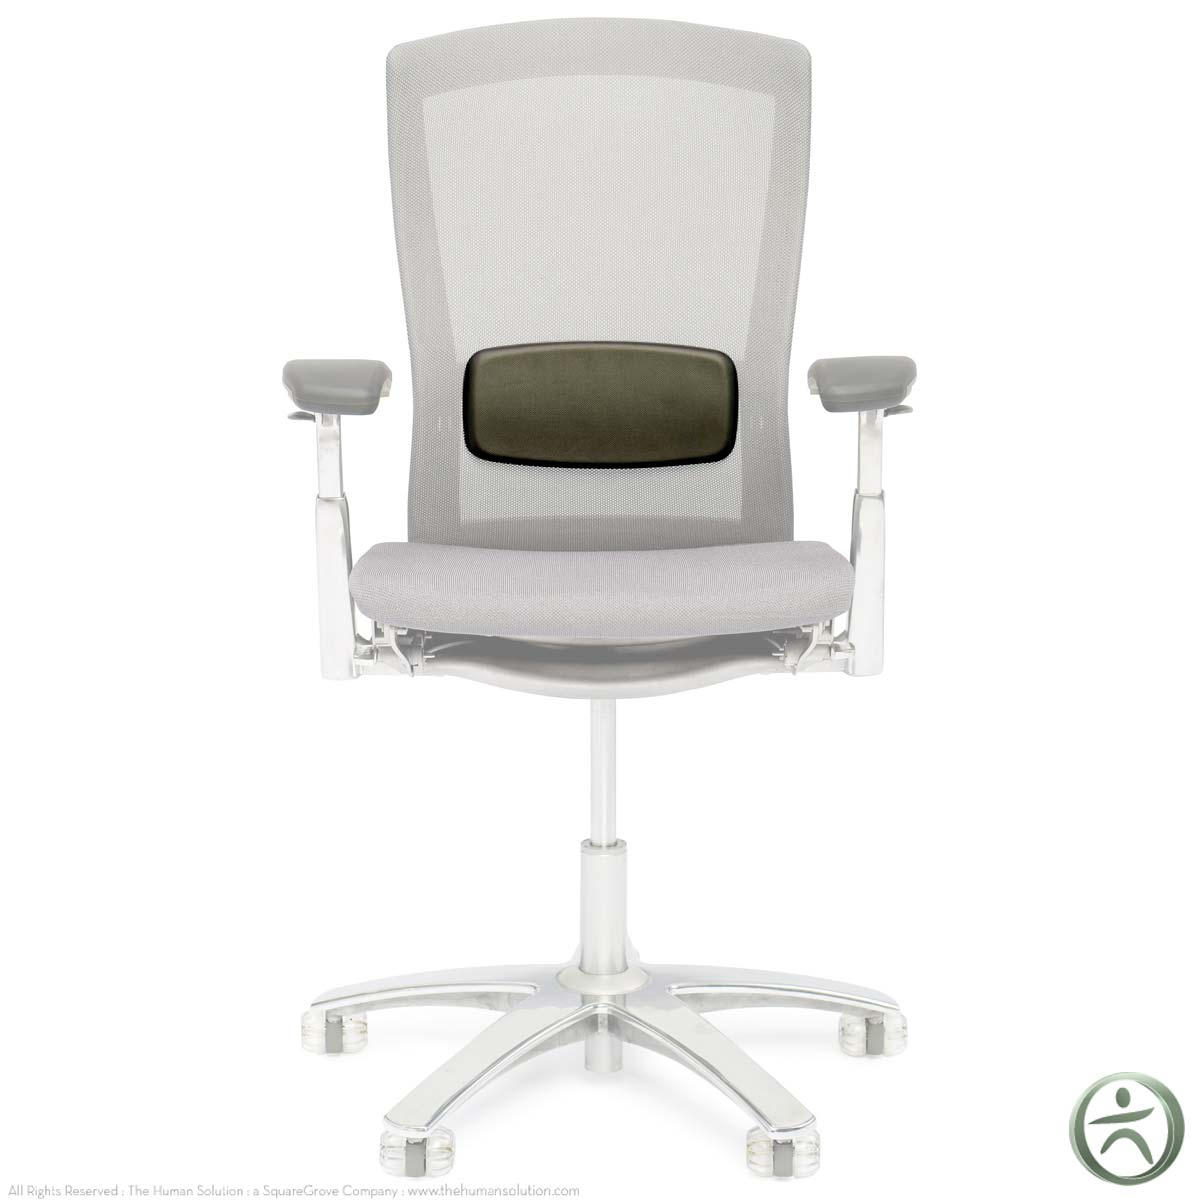 Back Support Chair Knoll Life Chair Lumbar Support Shop Knoll Ergonomic Chairs